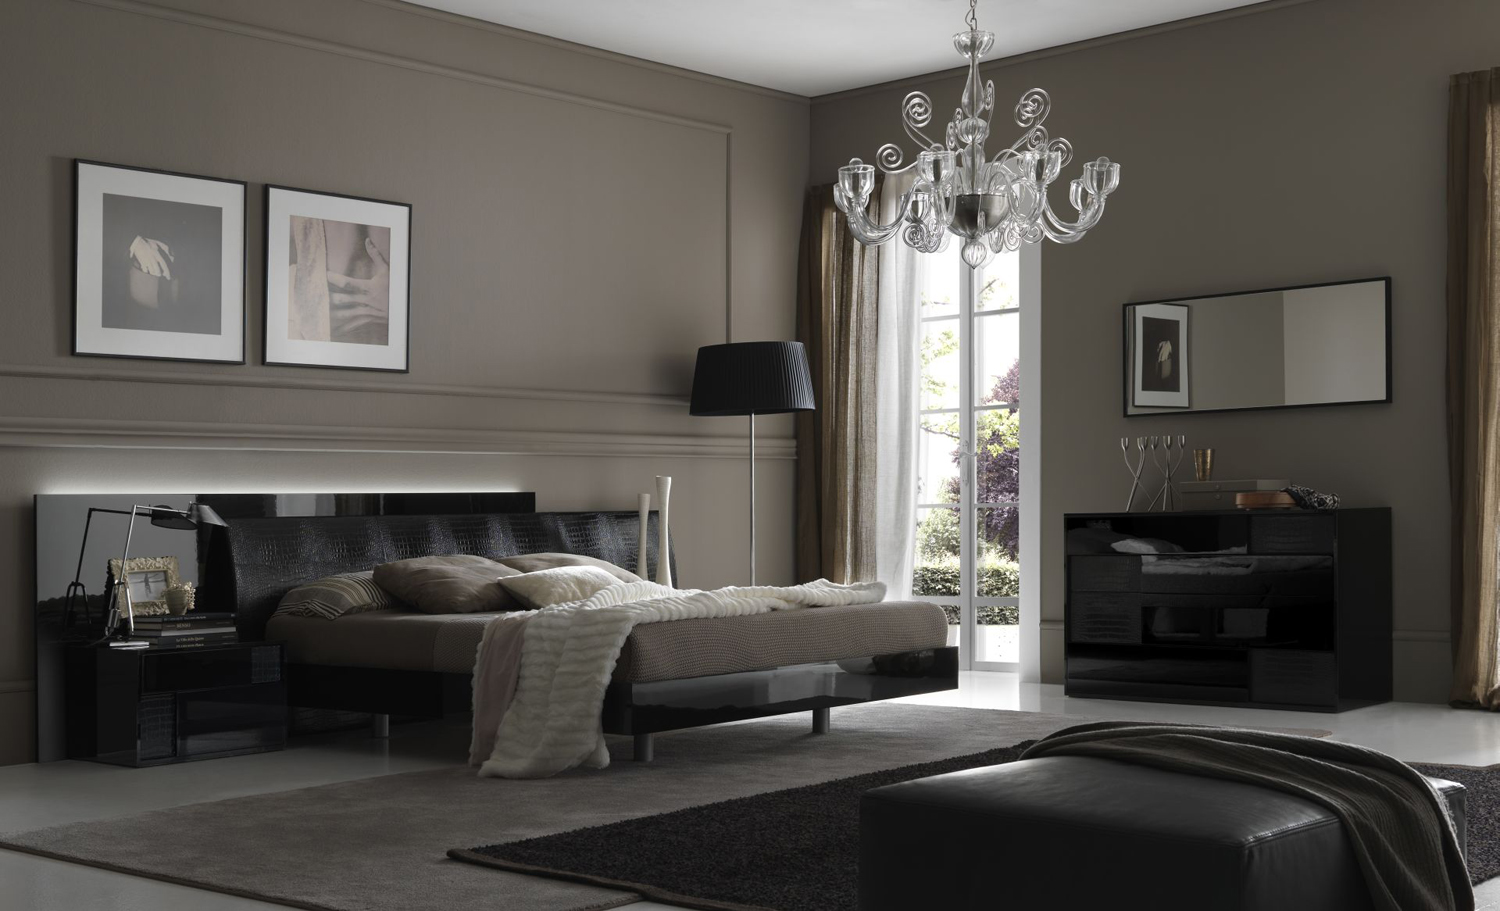 Bedroom decorating ideas from evinco for Modern interior bedroom designs